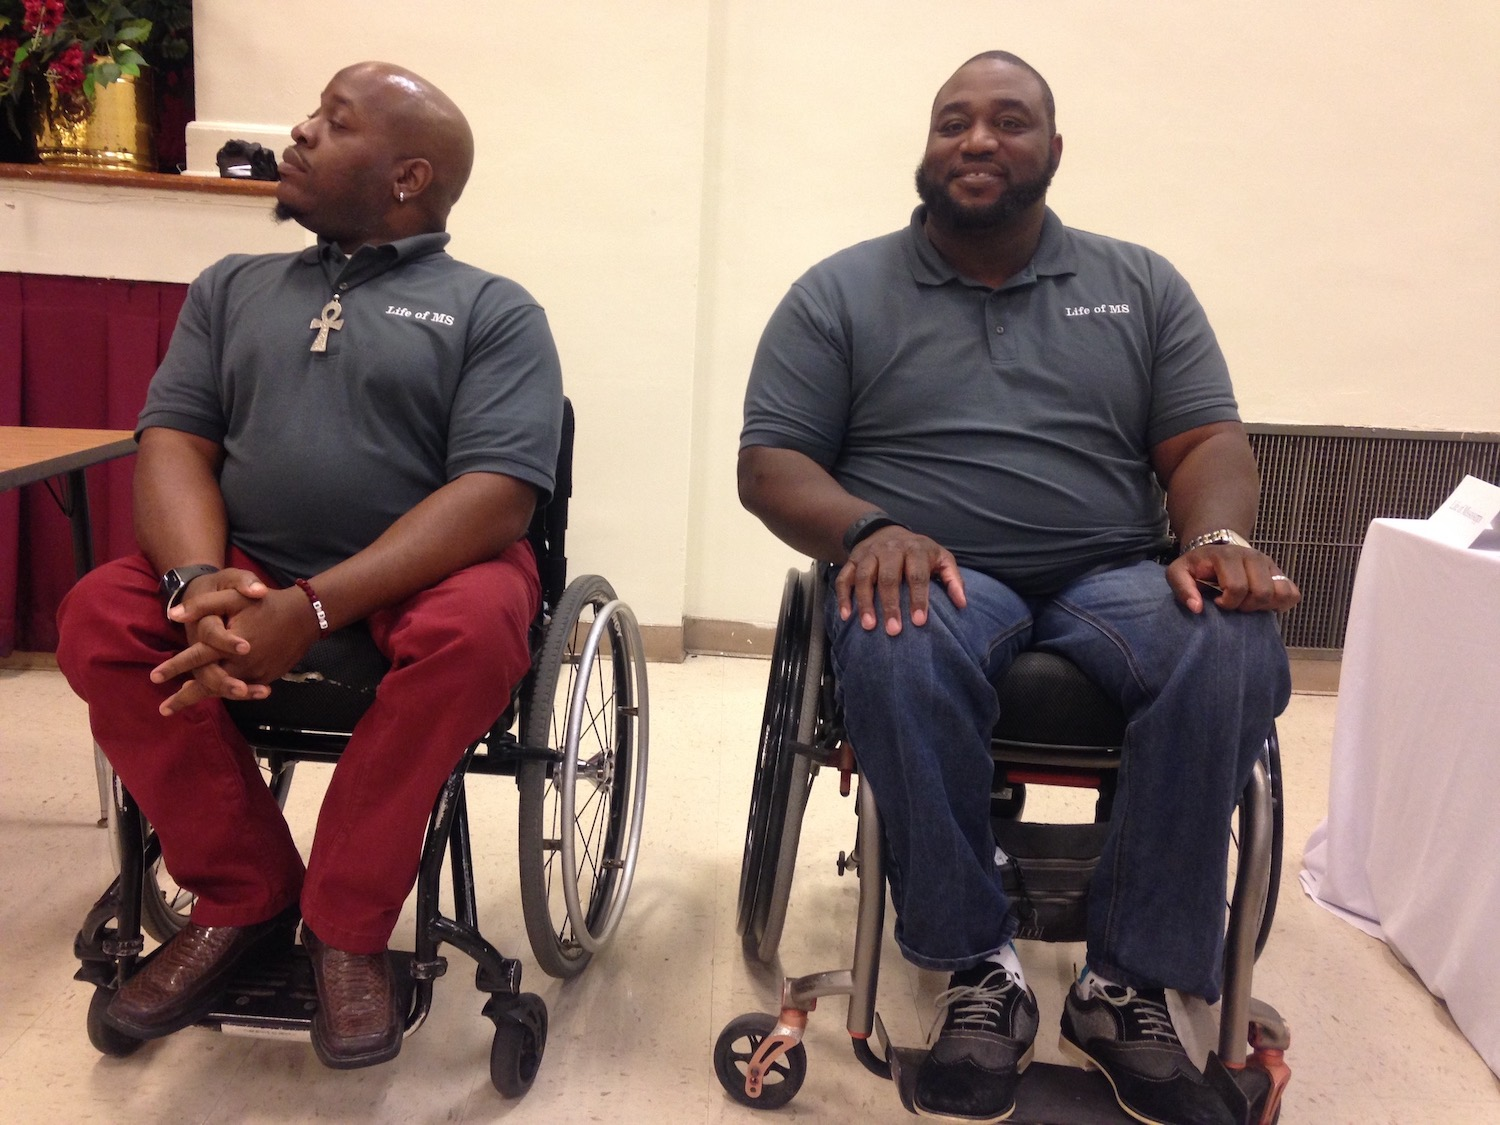 Motivational  speaker Dwight Owens, right, and JSU alum Mario Henderson were special guests during a presentation by JSU's Metro Jackson Community Prevention Coalition (MJCPC). The organization invited Lanier High School students to hear about the consequences of drunken-driving.